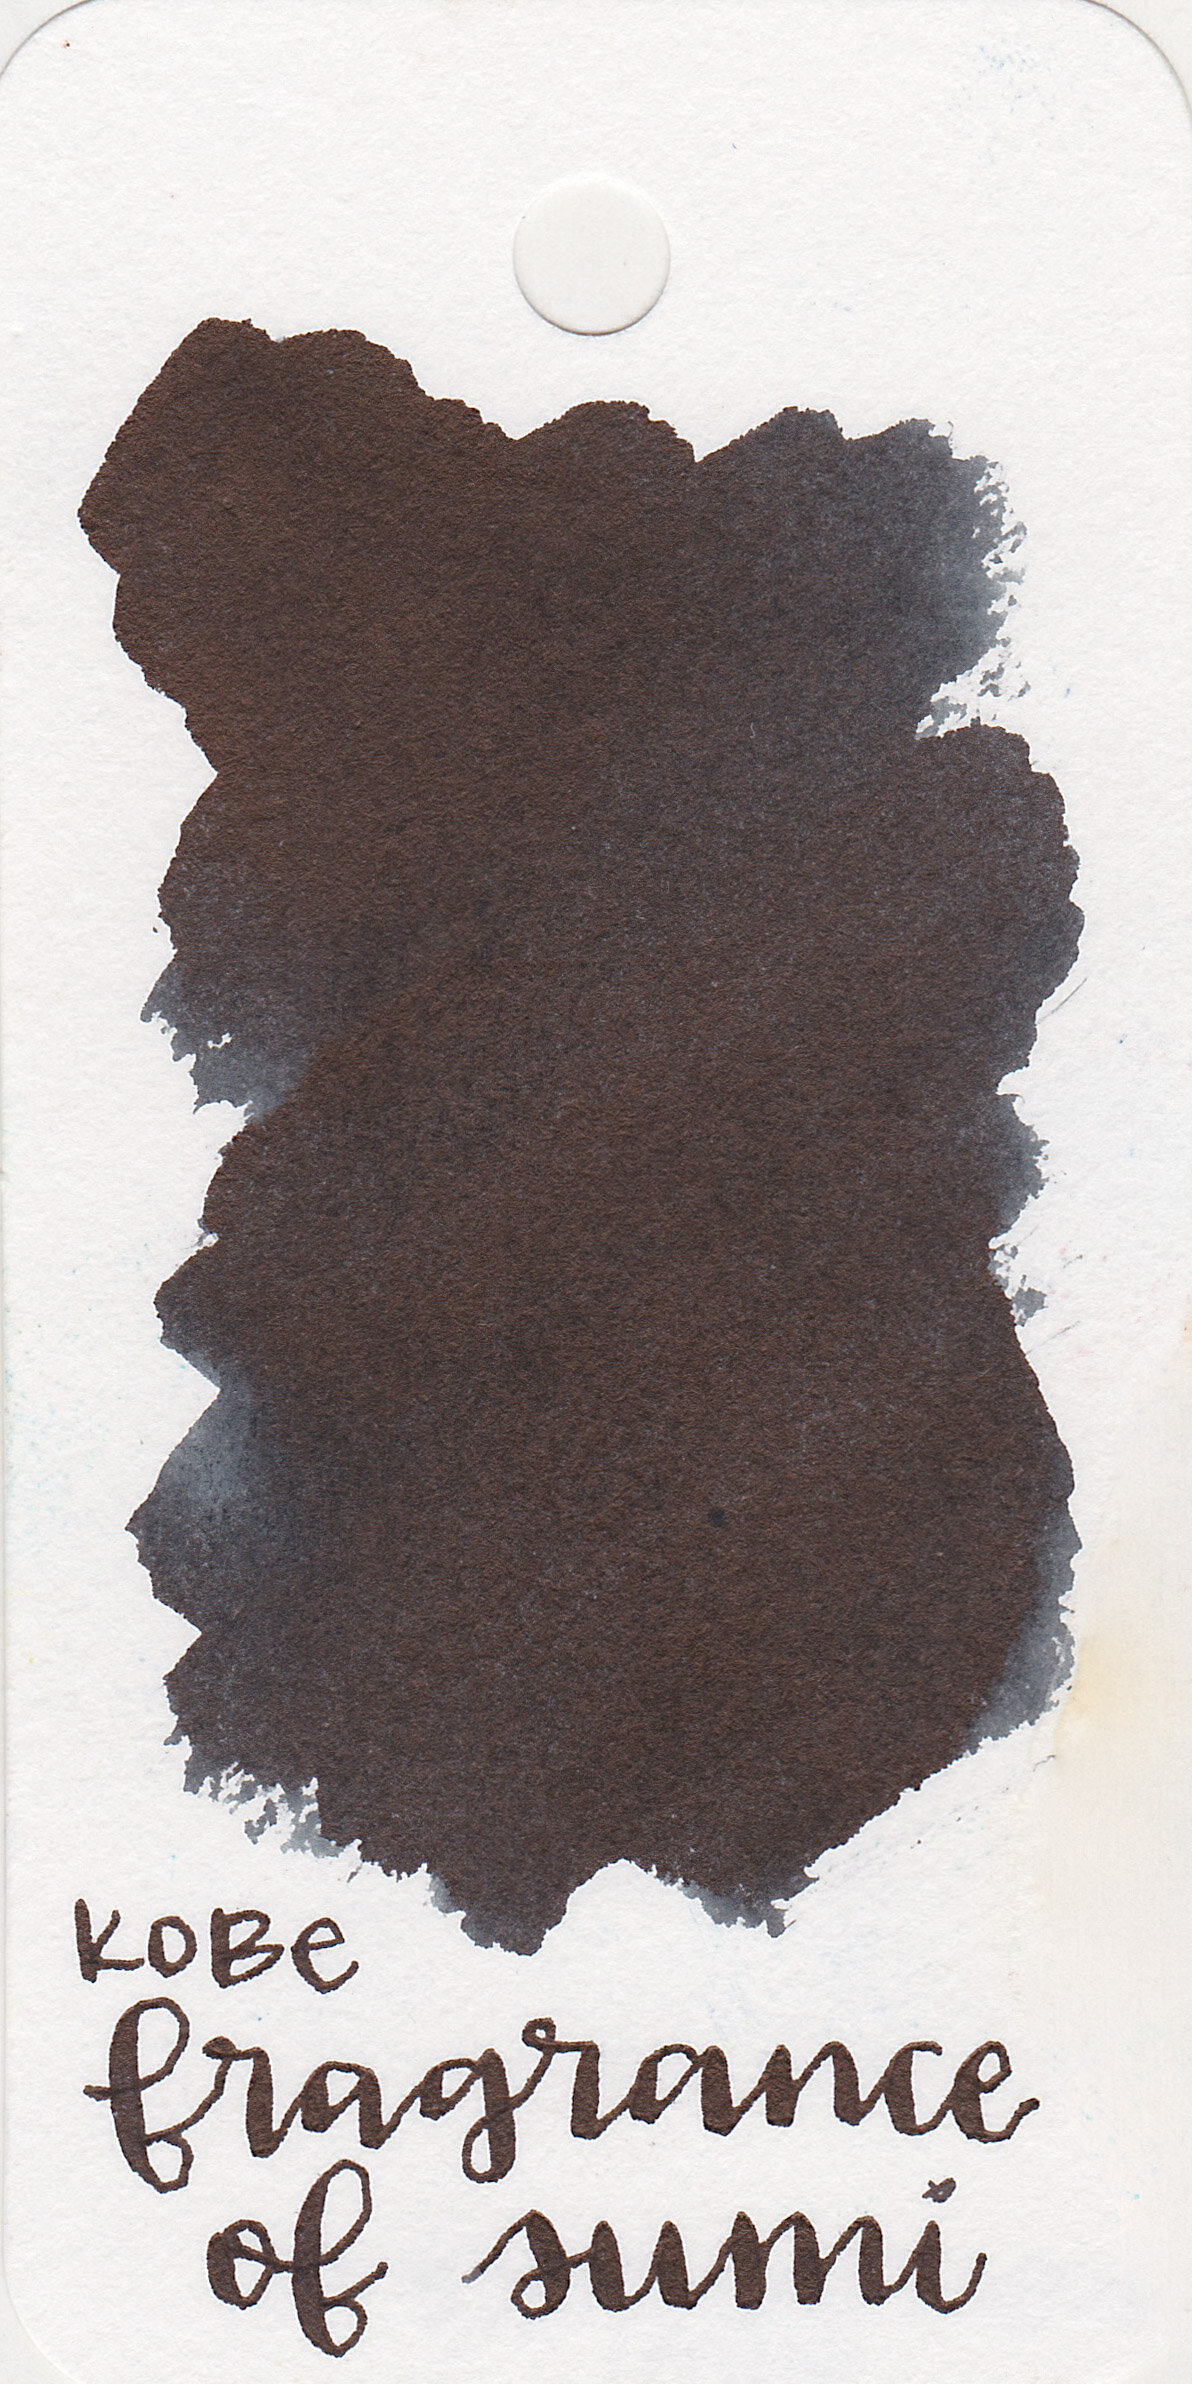 The color: - Fragrance of Sumi is a dark, saturated black.